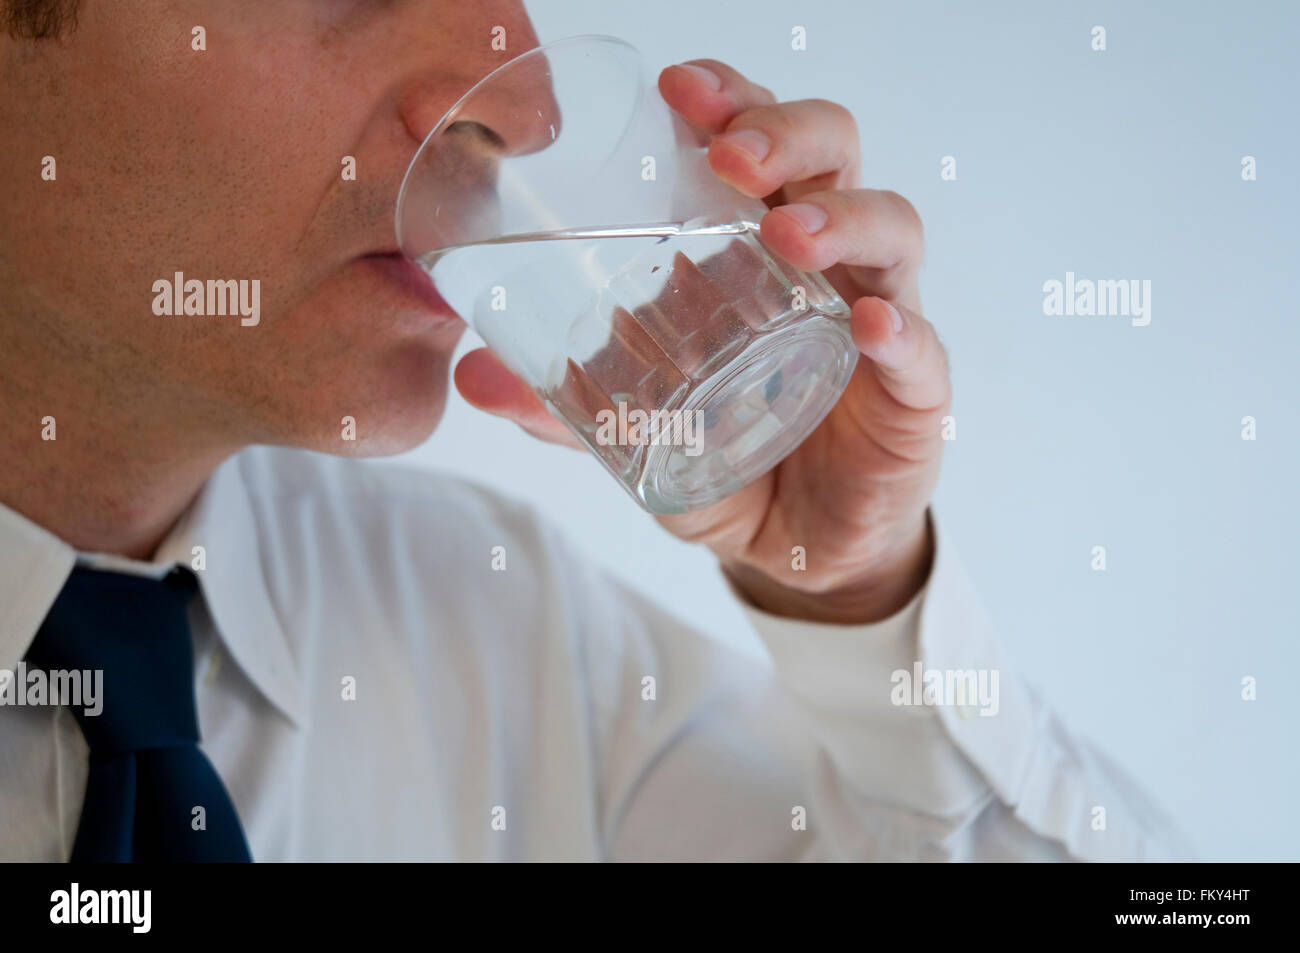 Man drinking a glass of water. Close view. - Stock Image